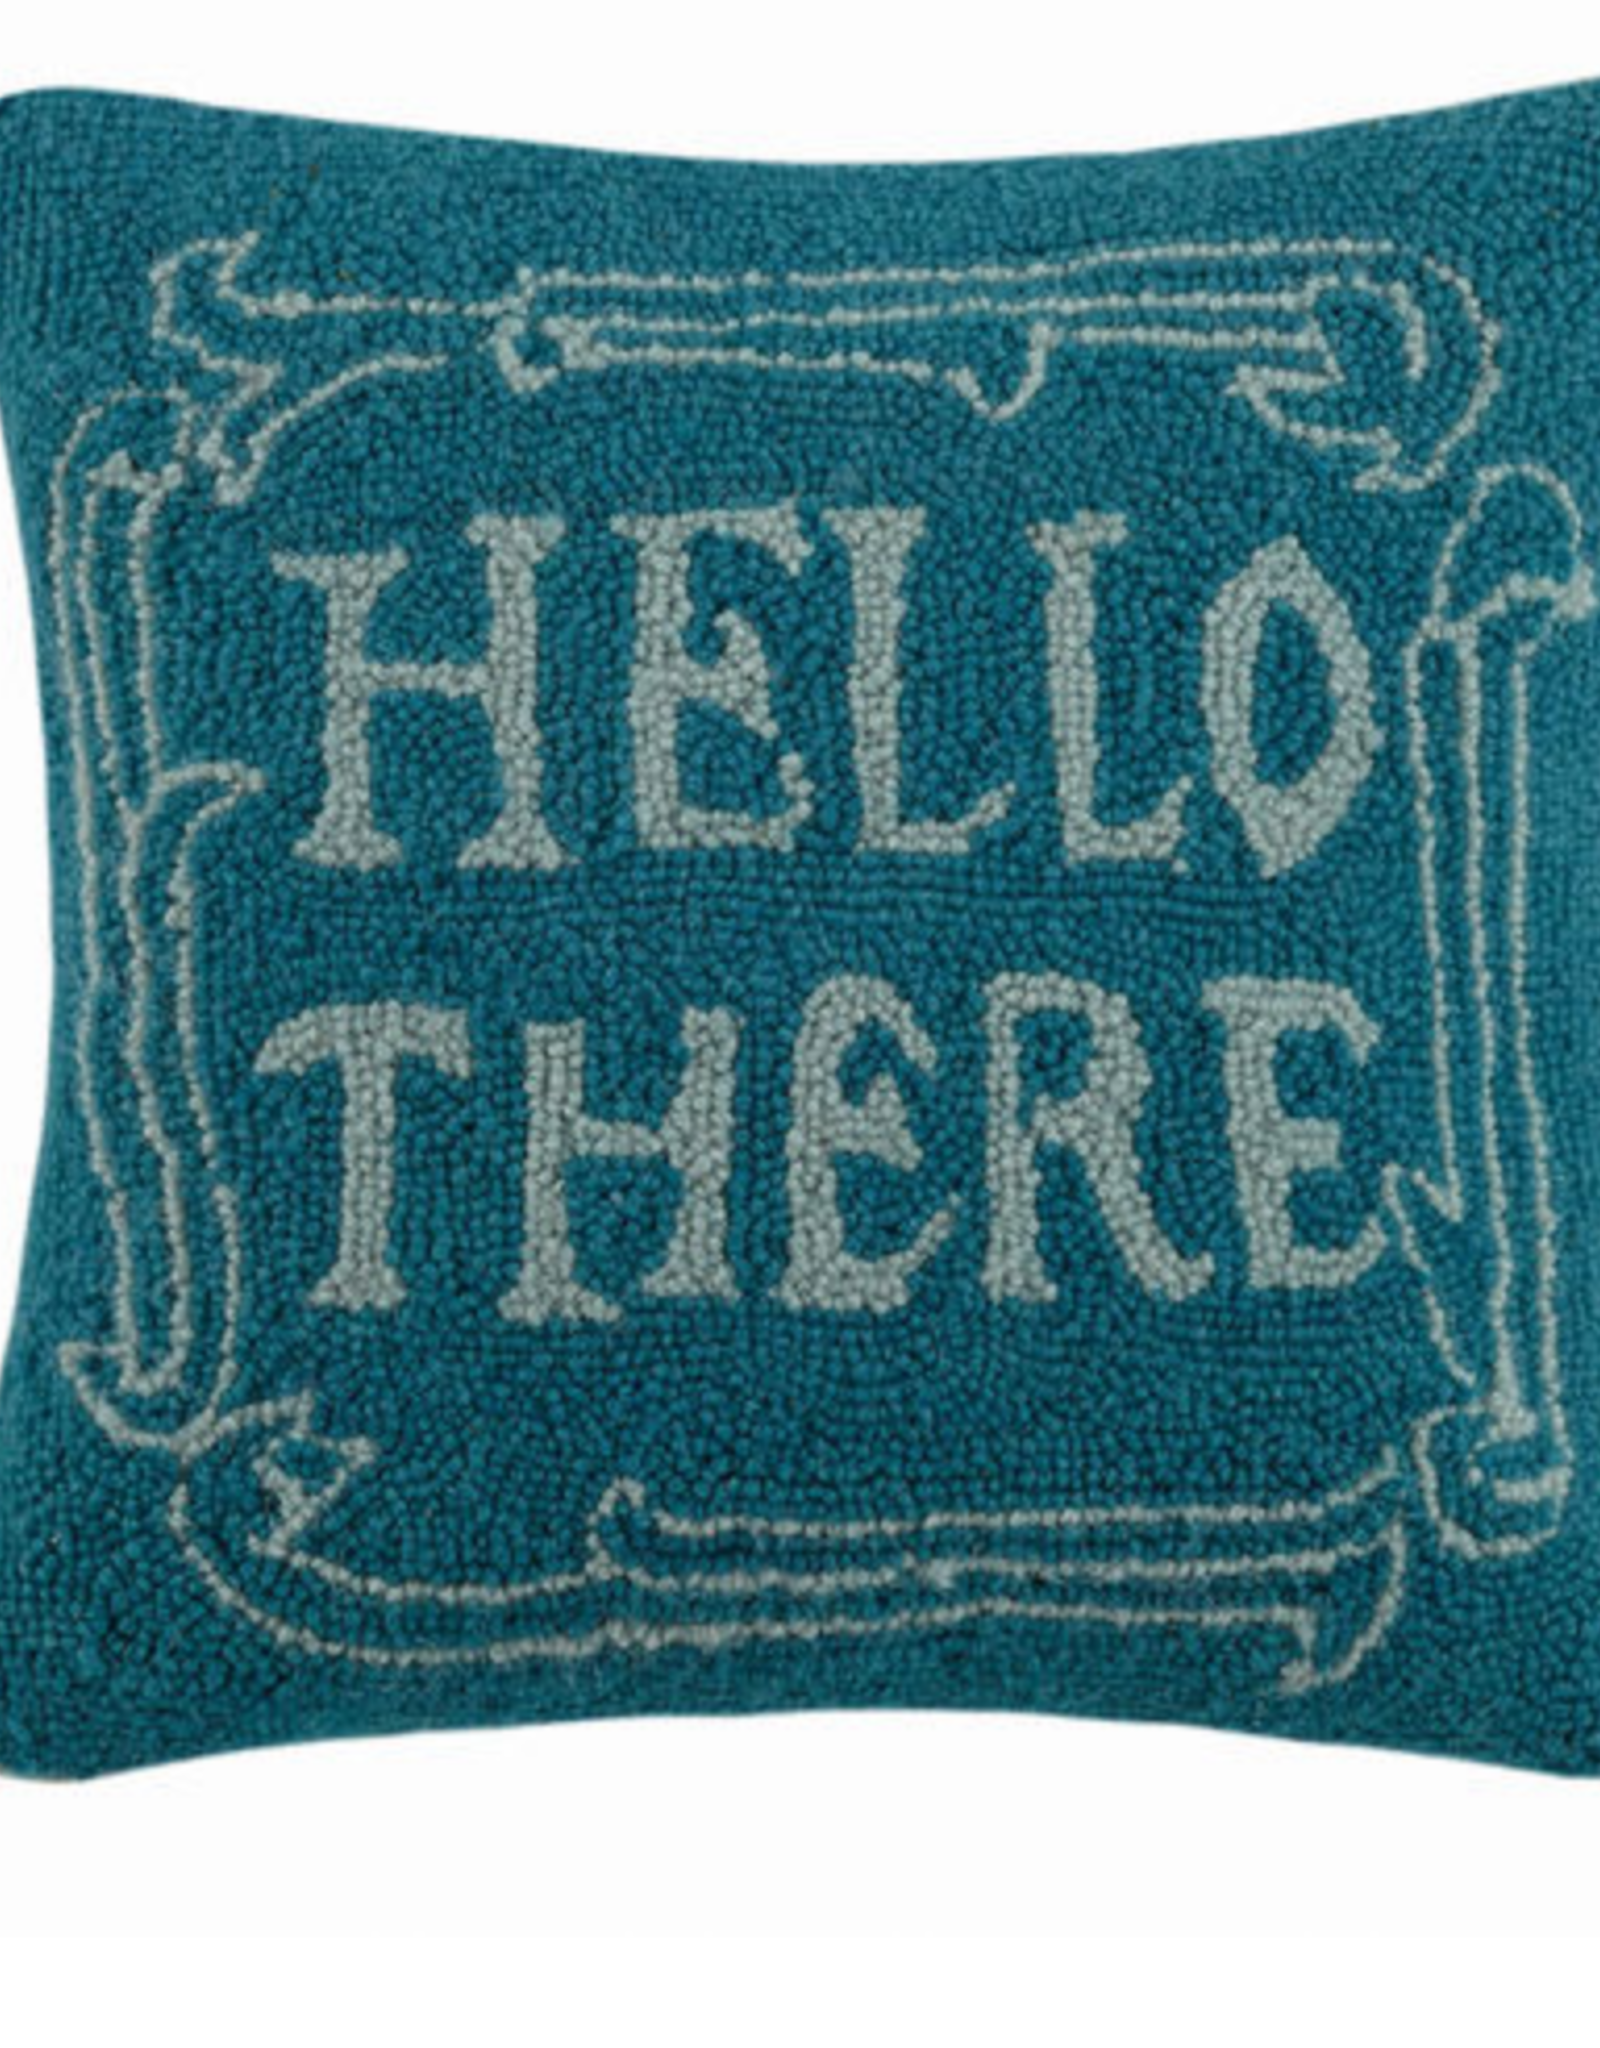 Hello There Handcrafted Hook Pillow